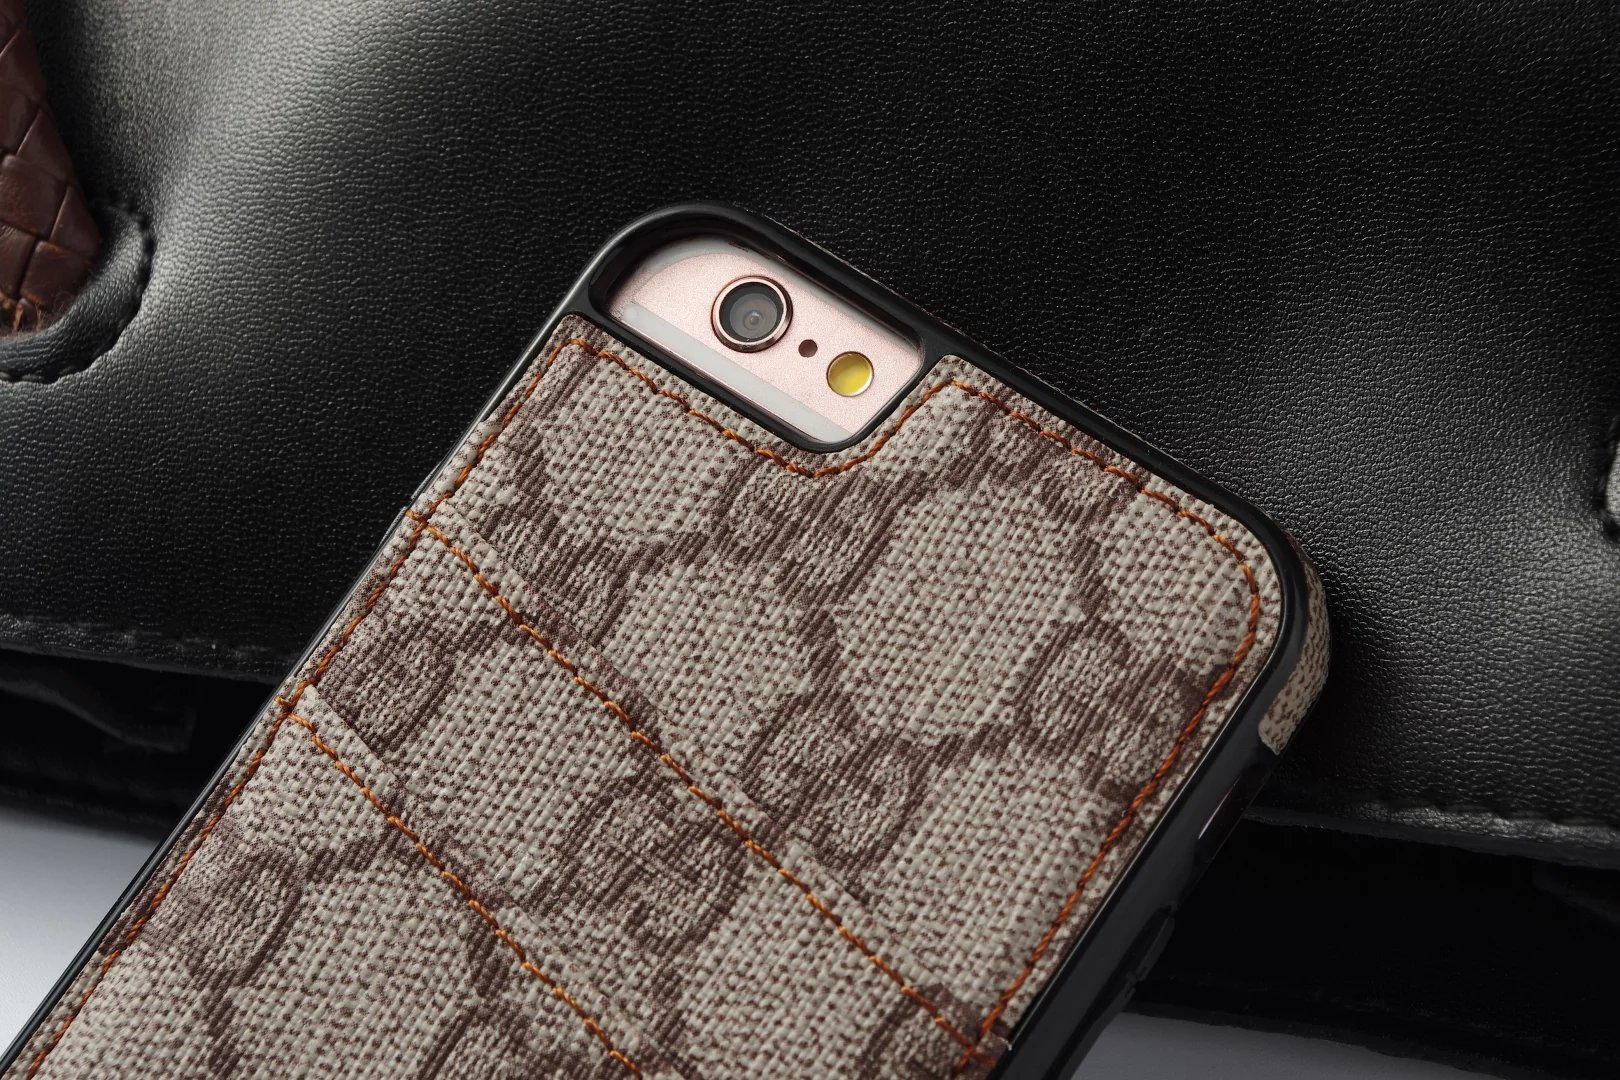 iphone hülle selbst designen iphone hülle holz Burberry iphone 8 Plus hüllen flip ca8 Plus E handyhülle 8 Pluslbst designen handy zubehör iphone 8 Plus ca8 Plus elbst gestalten kamera iphone 8 Plus iphone 8 Plus test